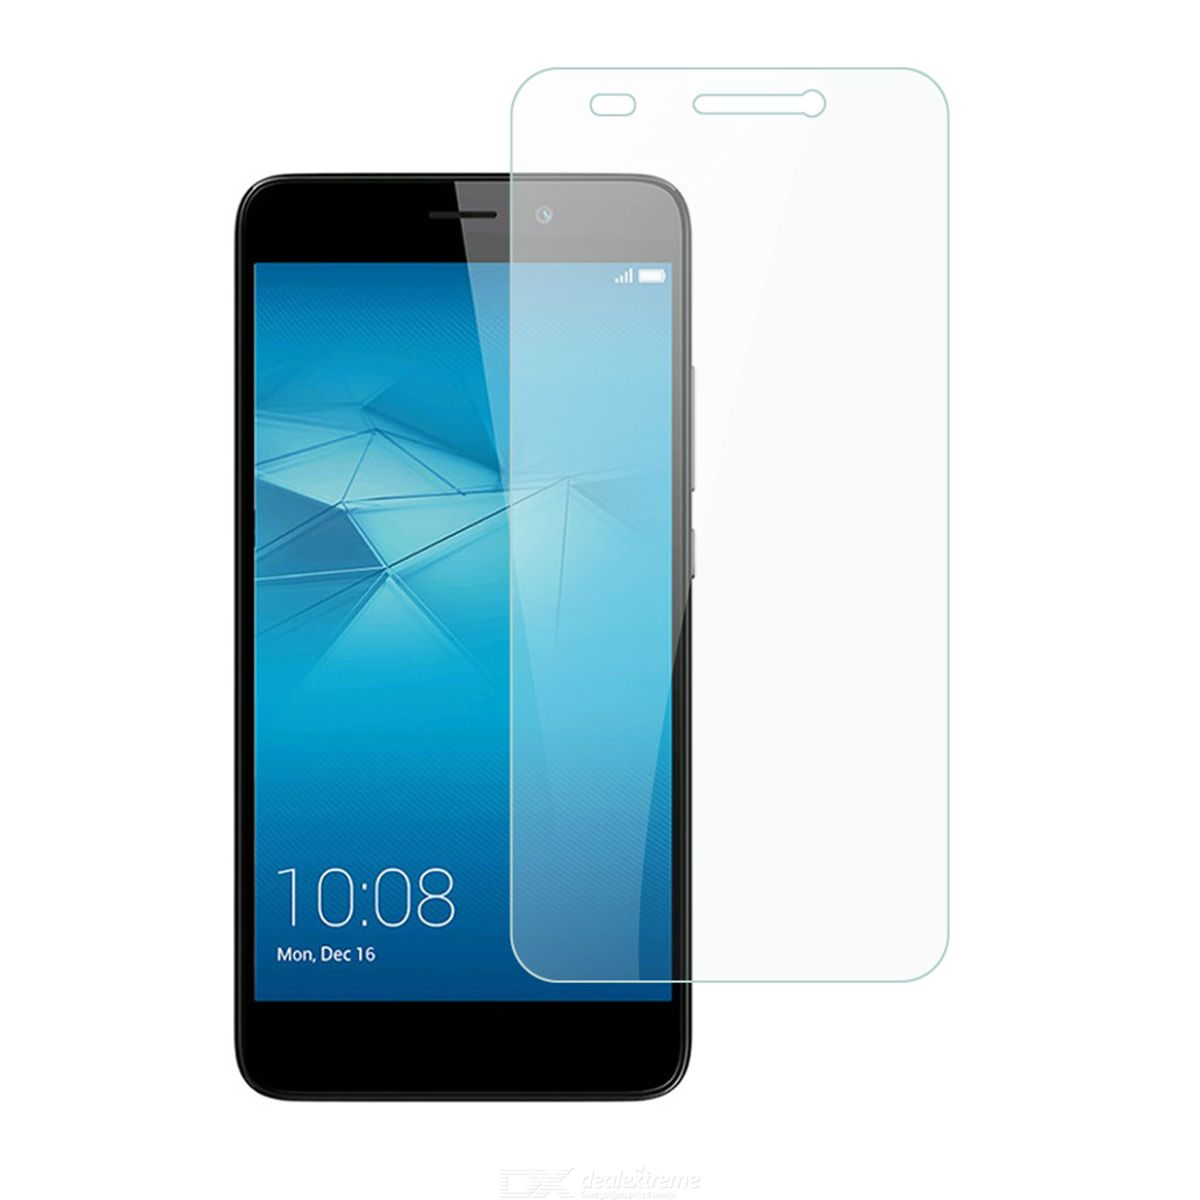 Dx coupon: Dayspirit Tempered Glass Screen Protector for Huawei Honor 5c,Honor 7 Lite, GT3